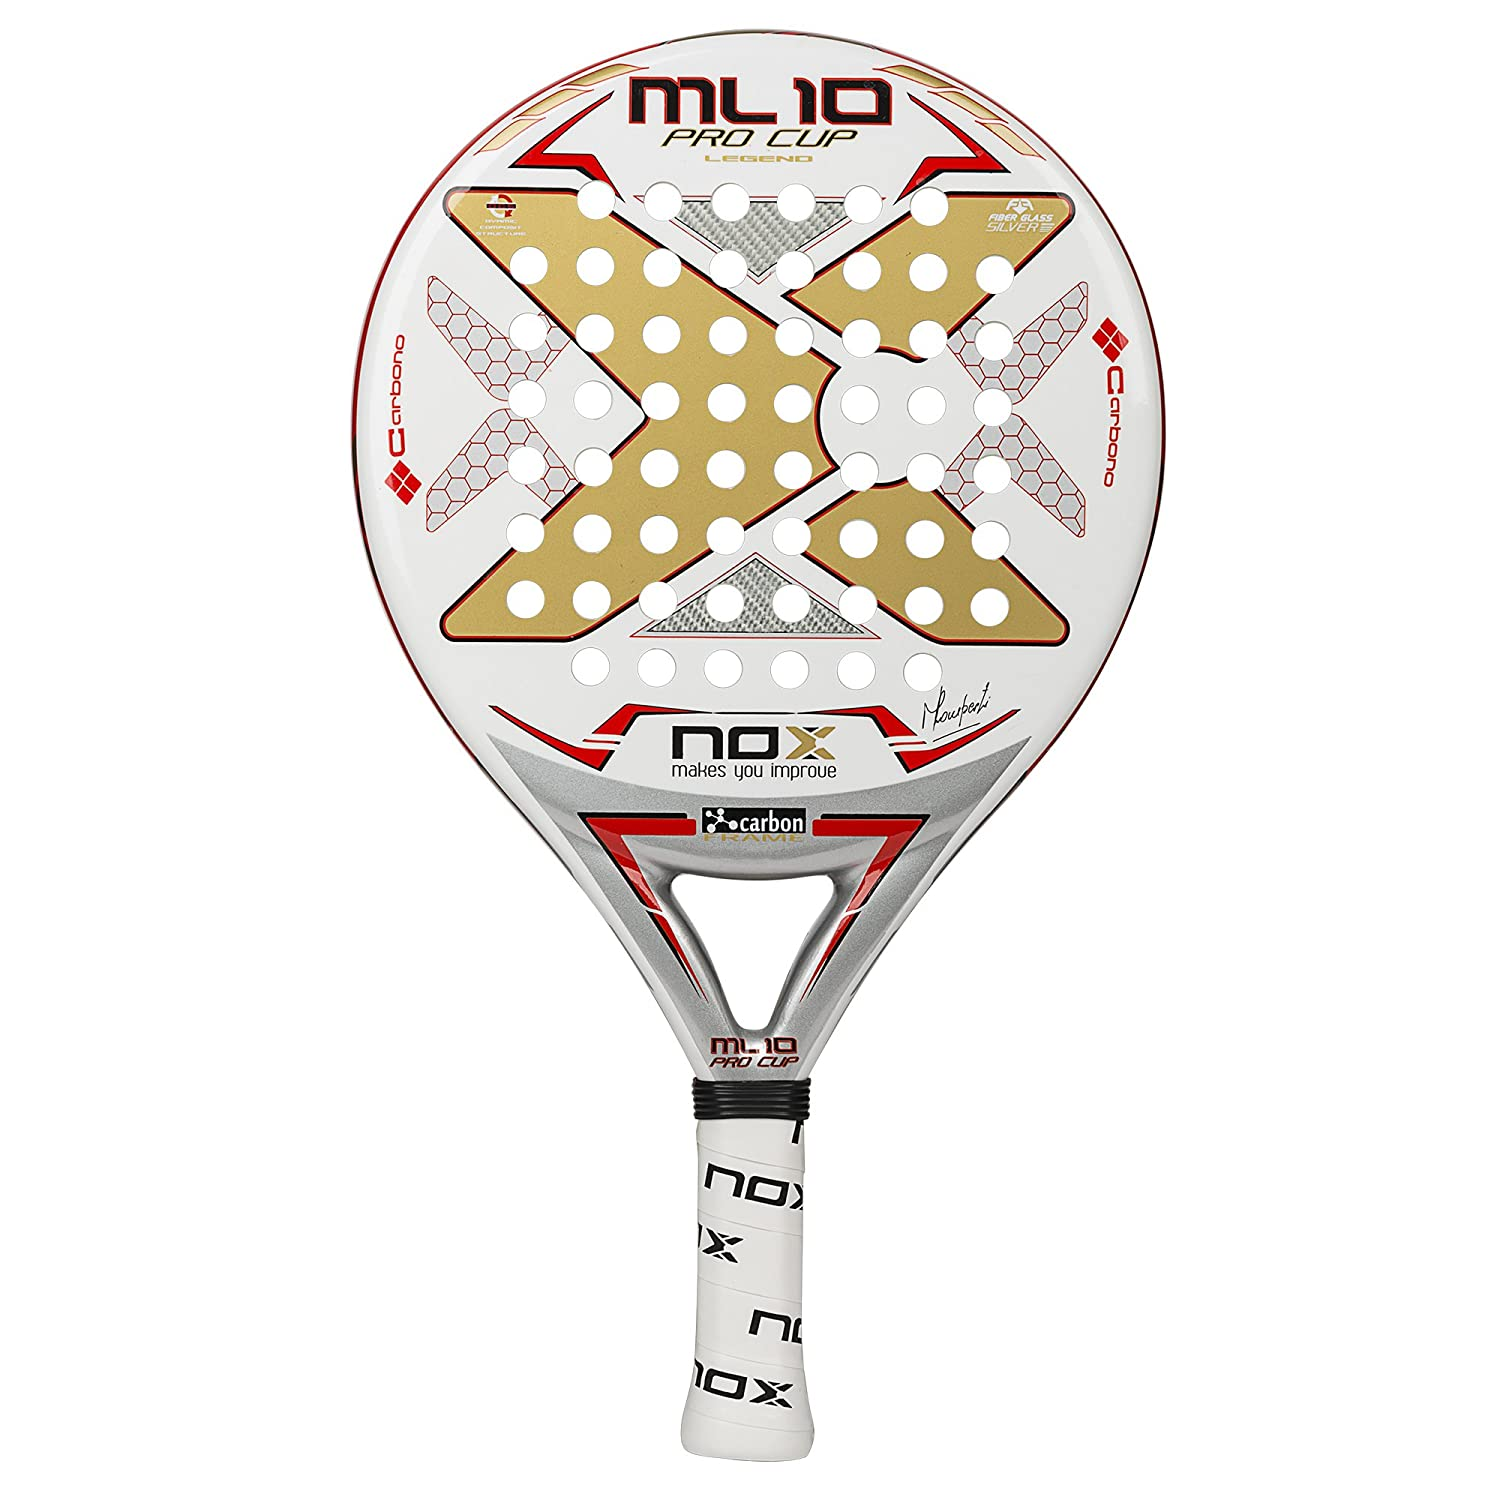 Amazon.com : NOX ML10 Pro Cup Padel Racket : Sports & Outdoors